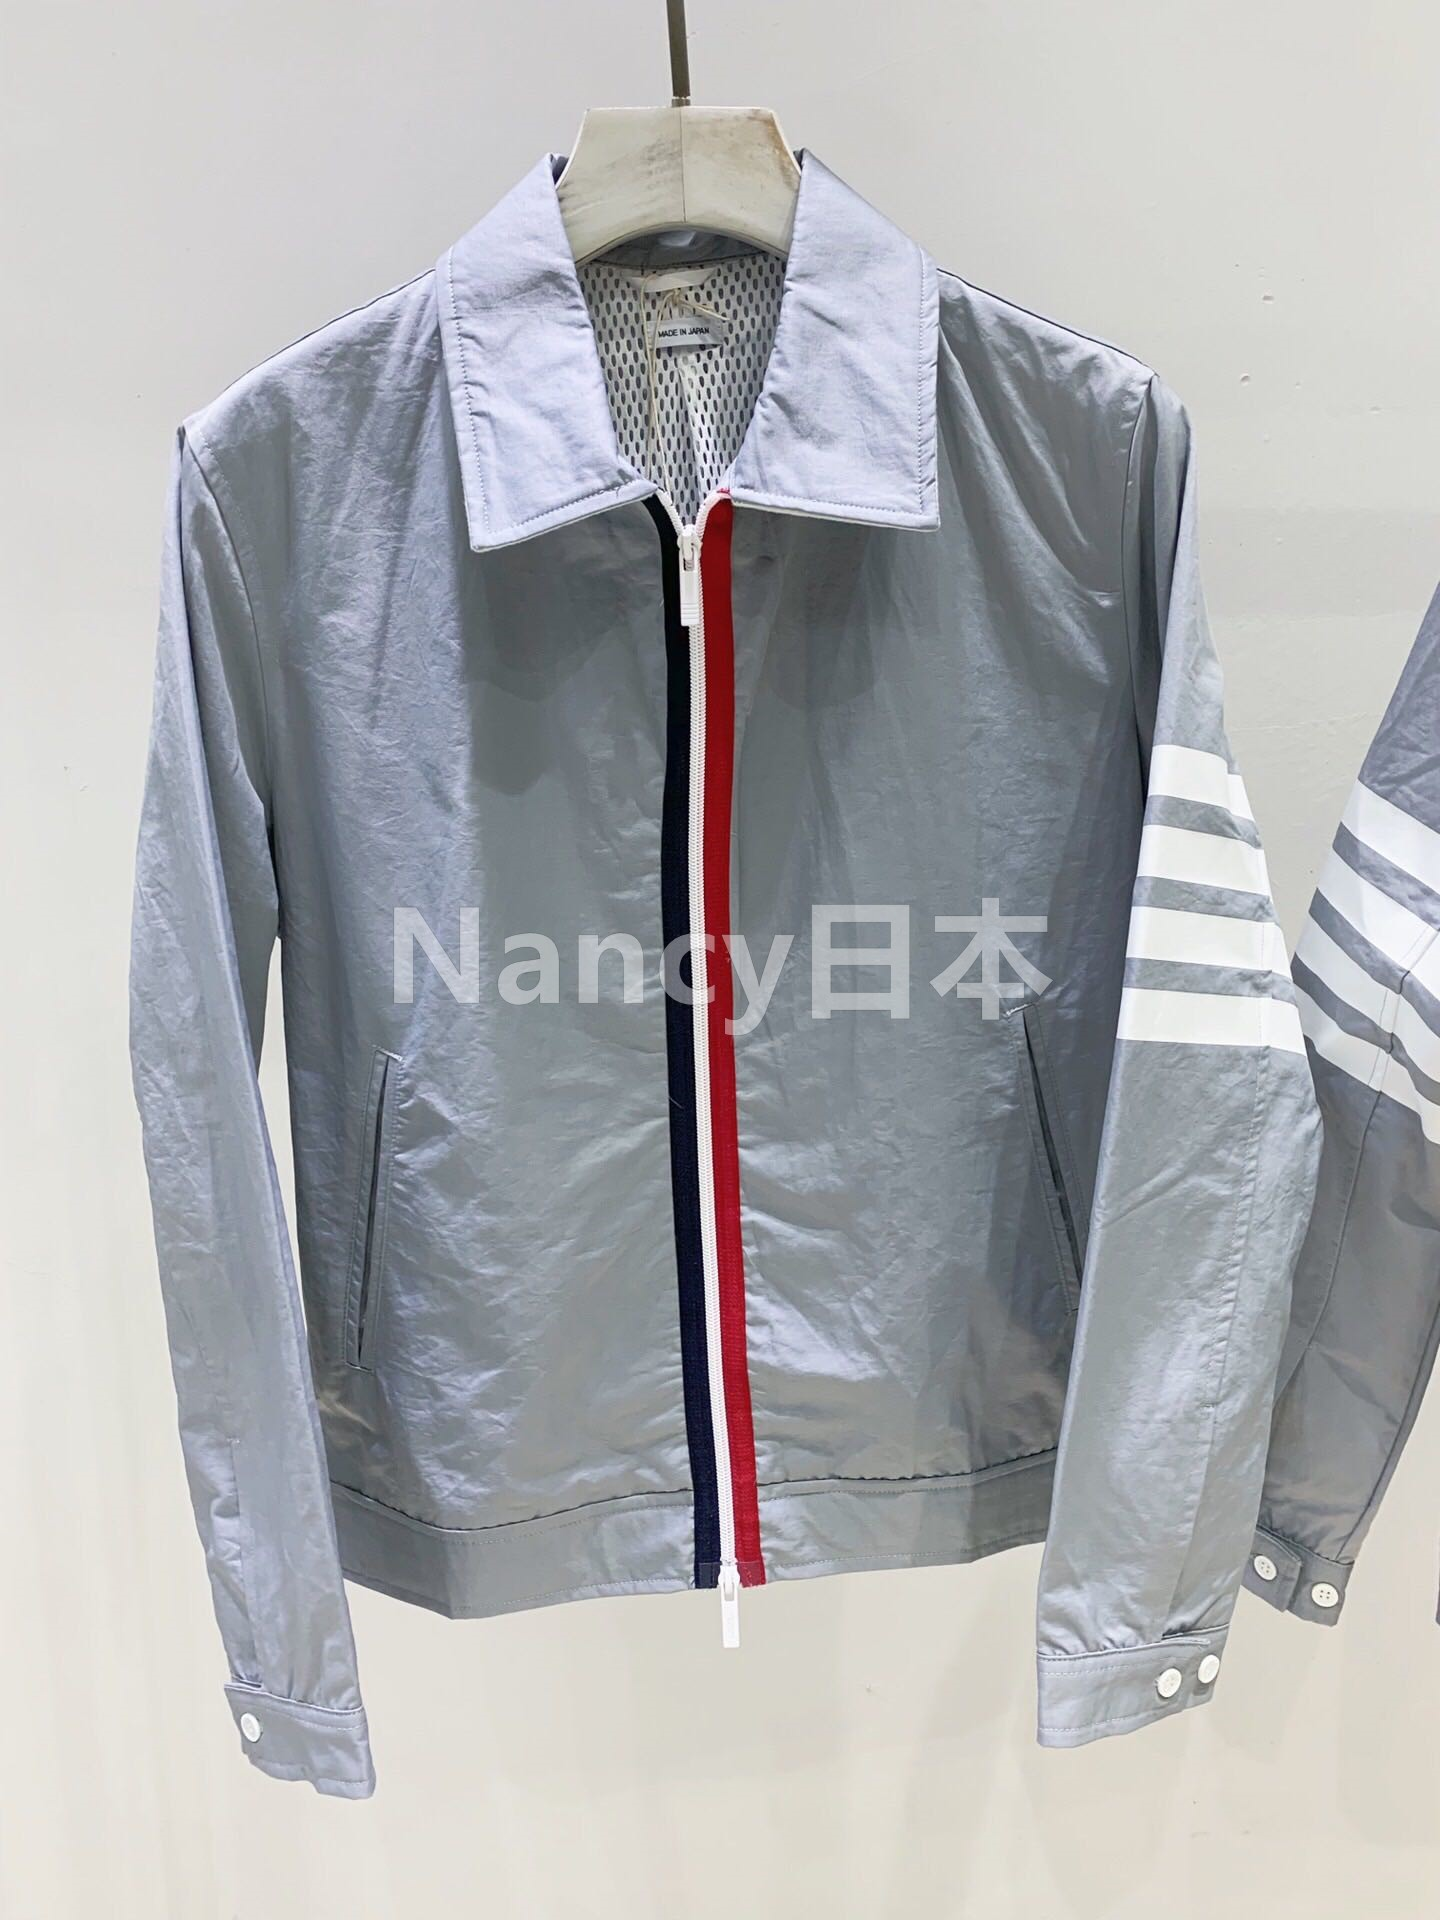 Japans Thom Browne 20 autumn winter stripes waterproof four 槓 mens and womens jacket jackets